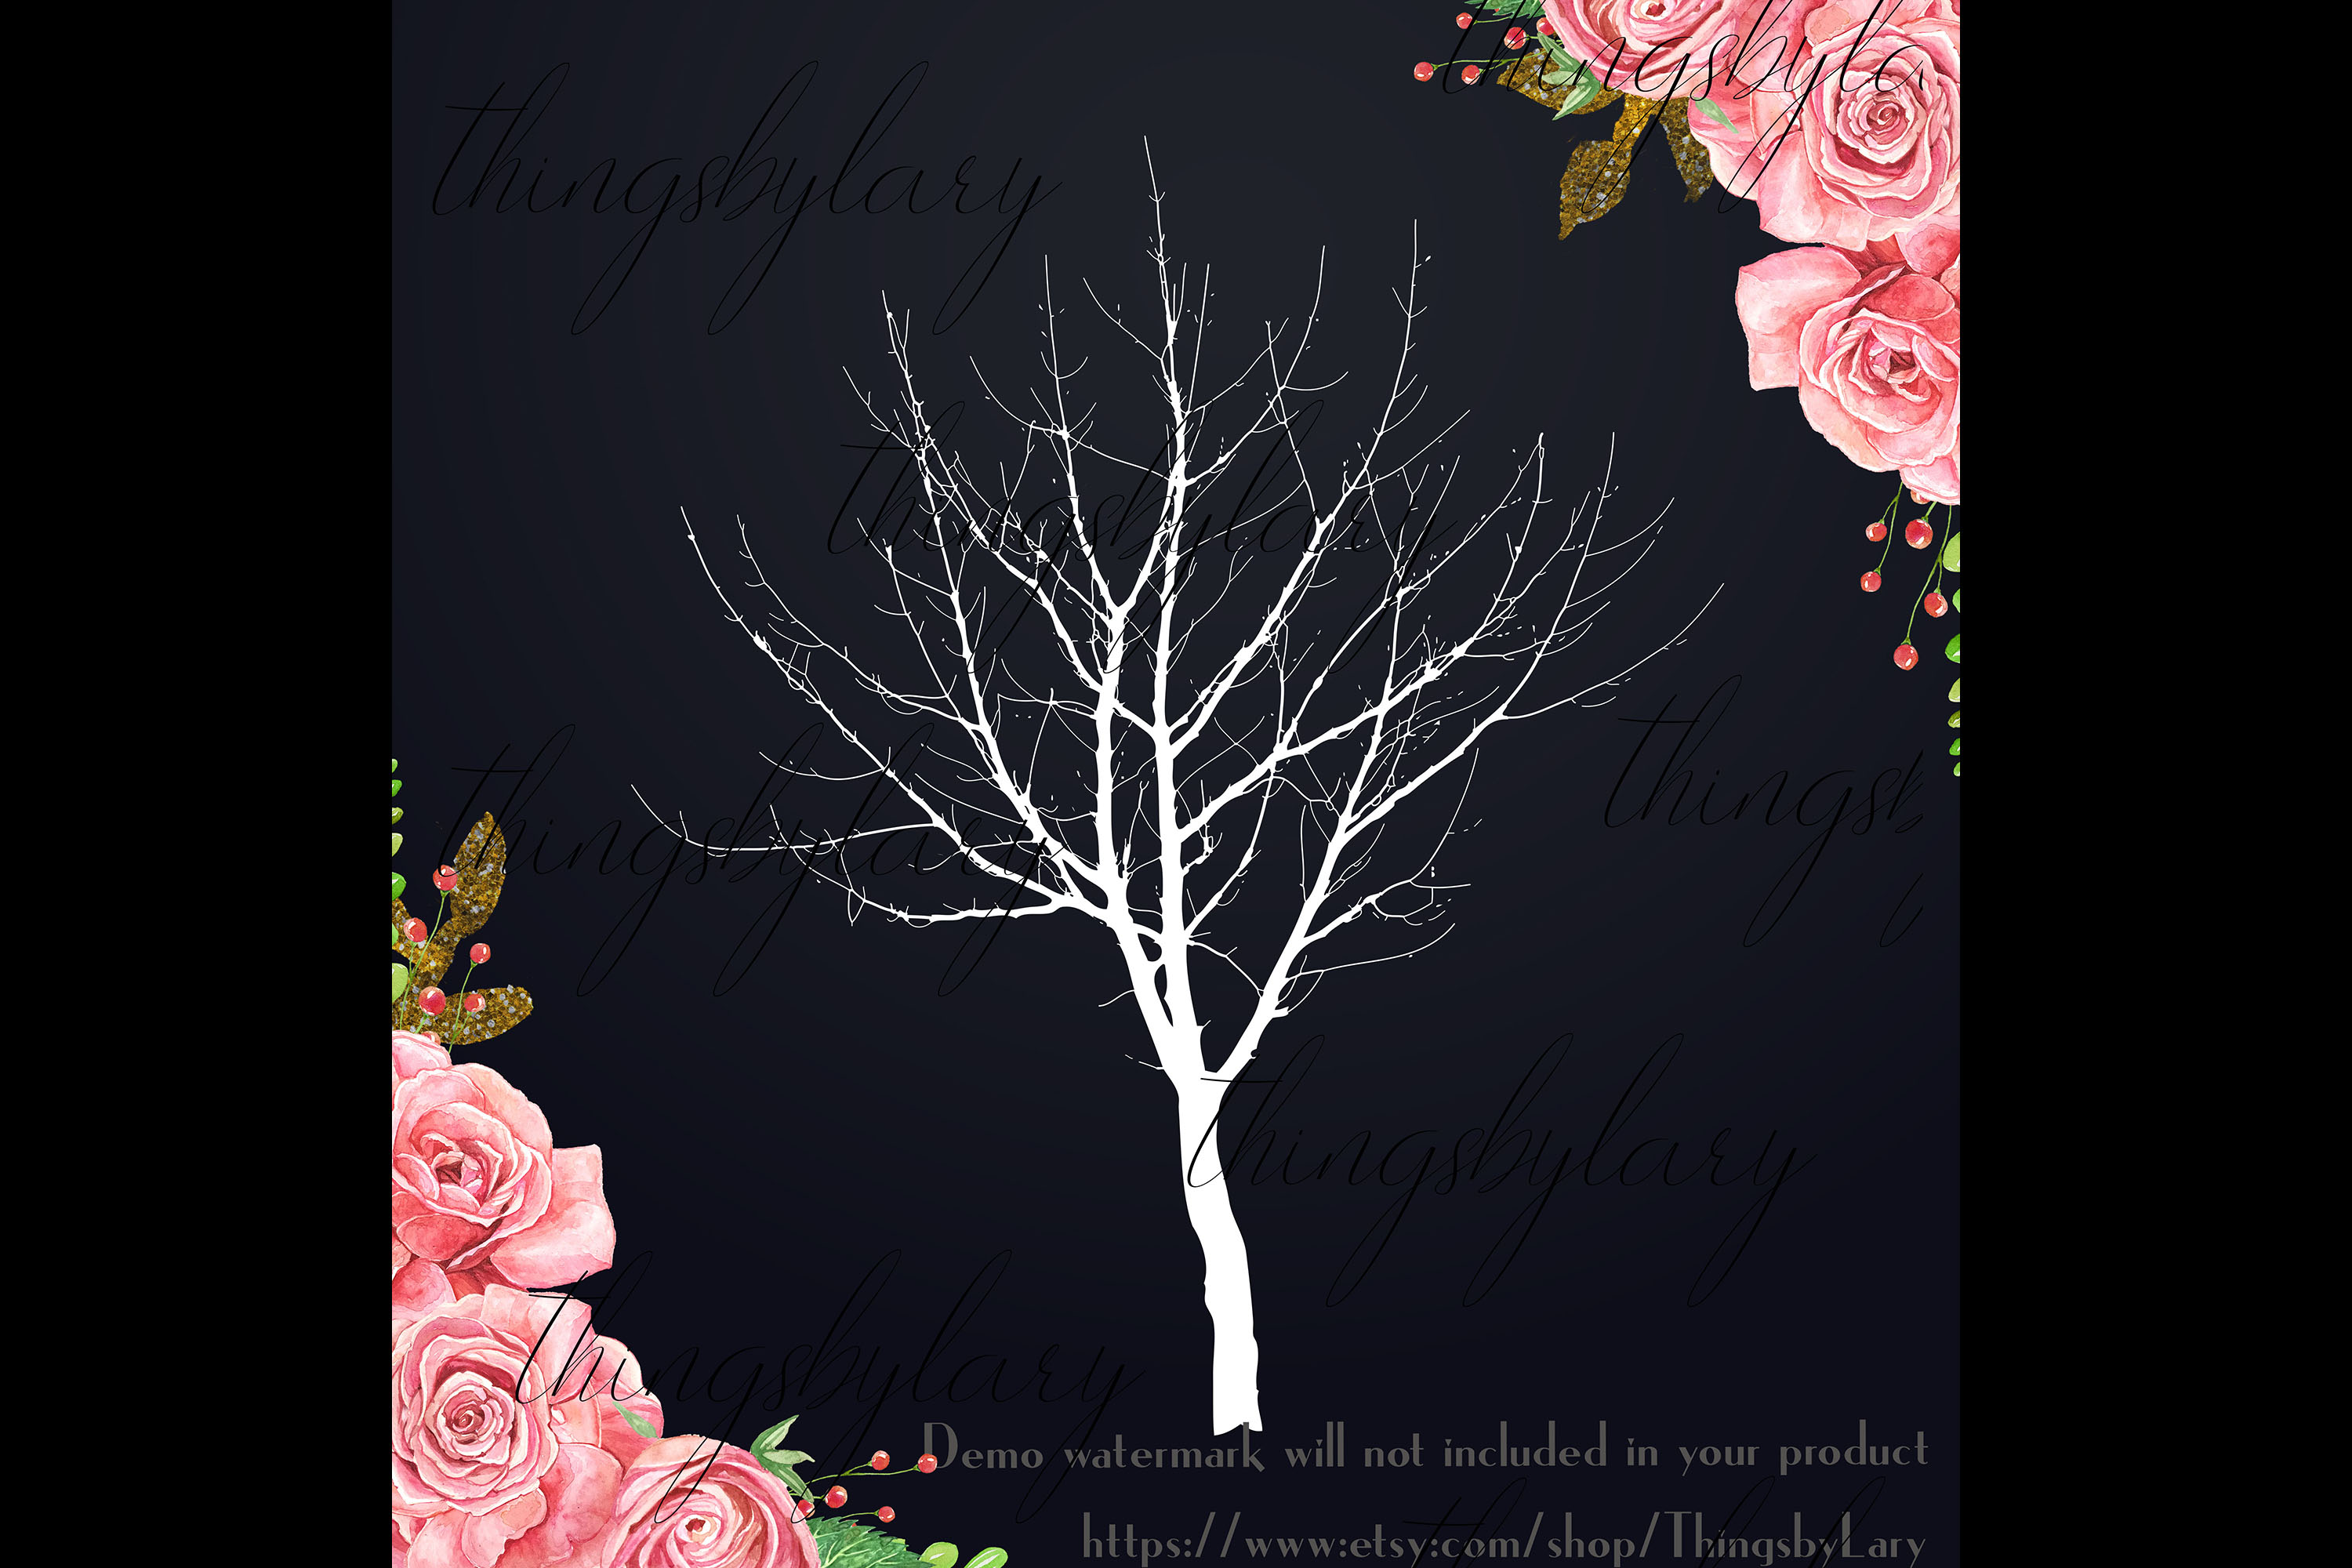 256 Winter Tree Branch Silhouette Wedding PNG Digital Images example image 4